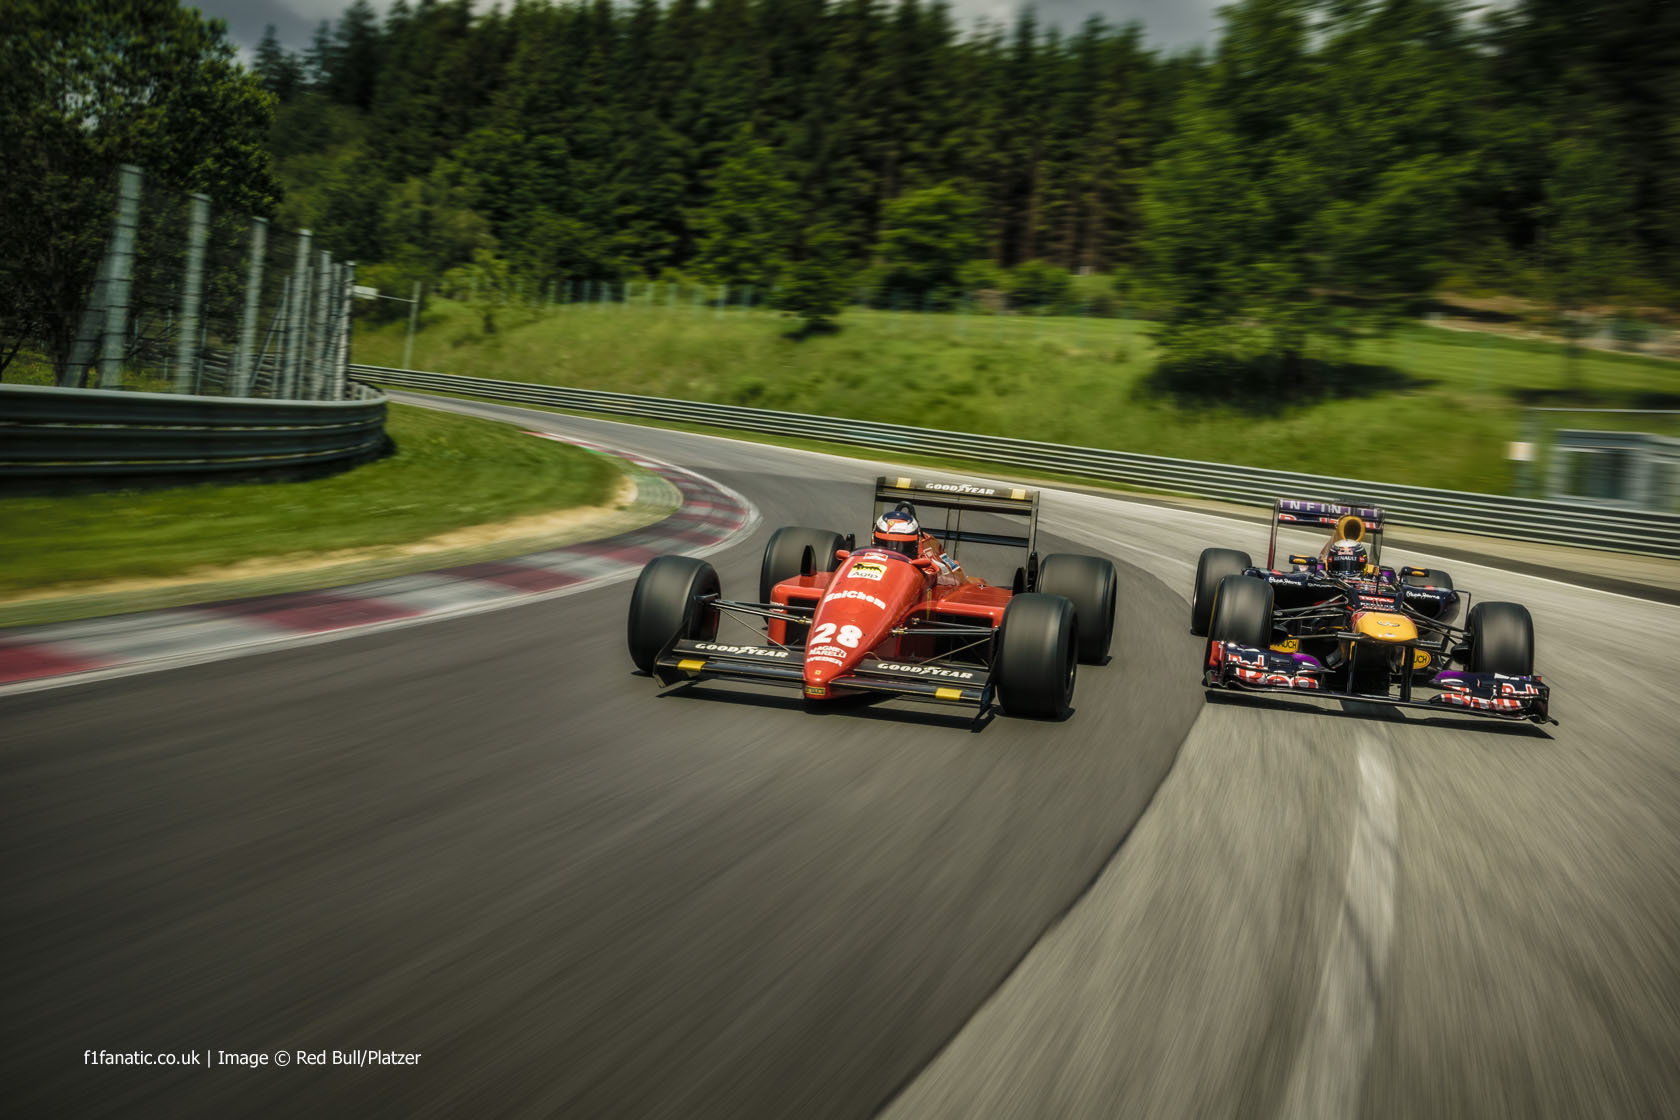 Sebastian Vettel, Gerhard Berger, Red Bull Ring, 2014